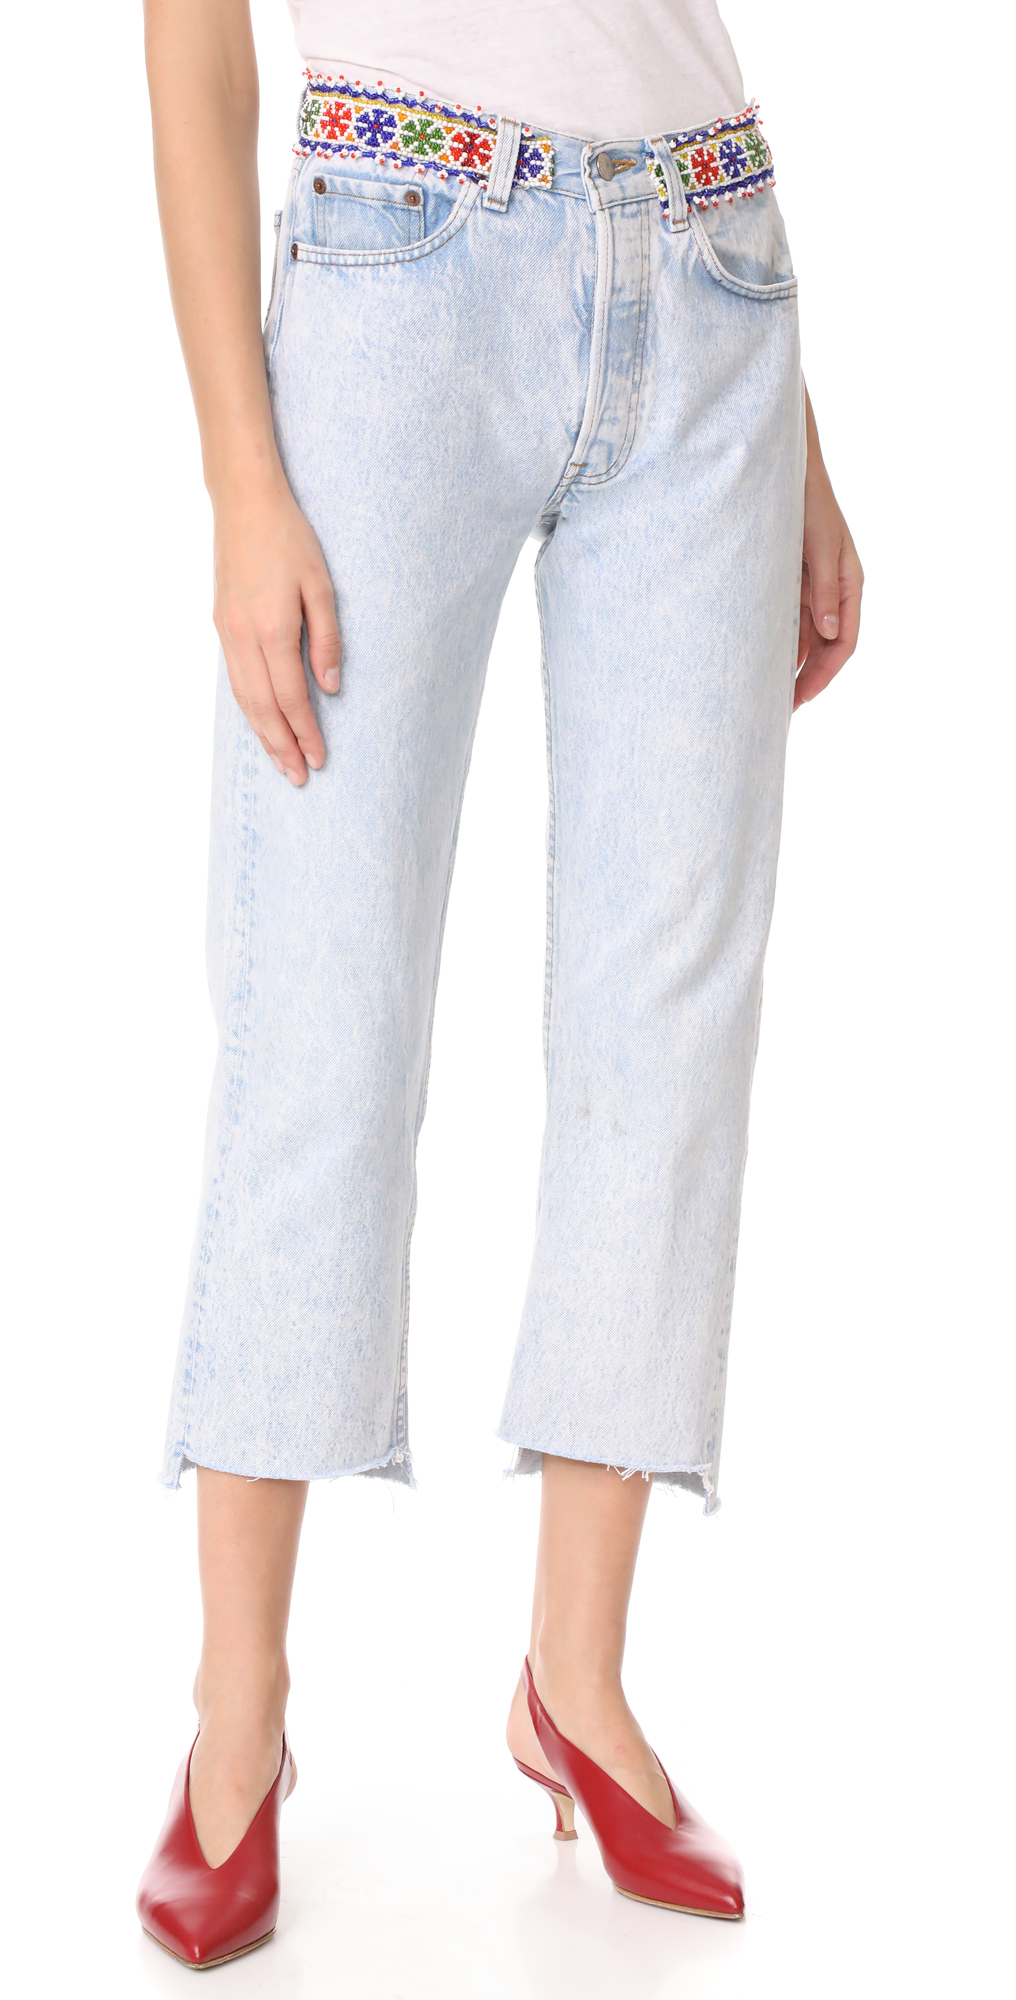 Denim Jeans With Beaded Belt ONE by Tricia Fix